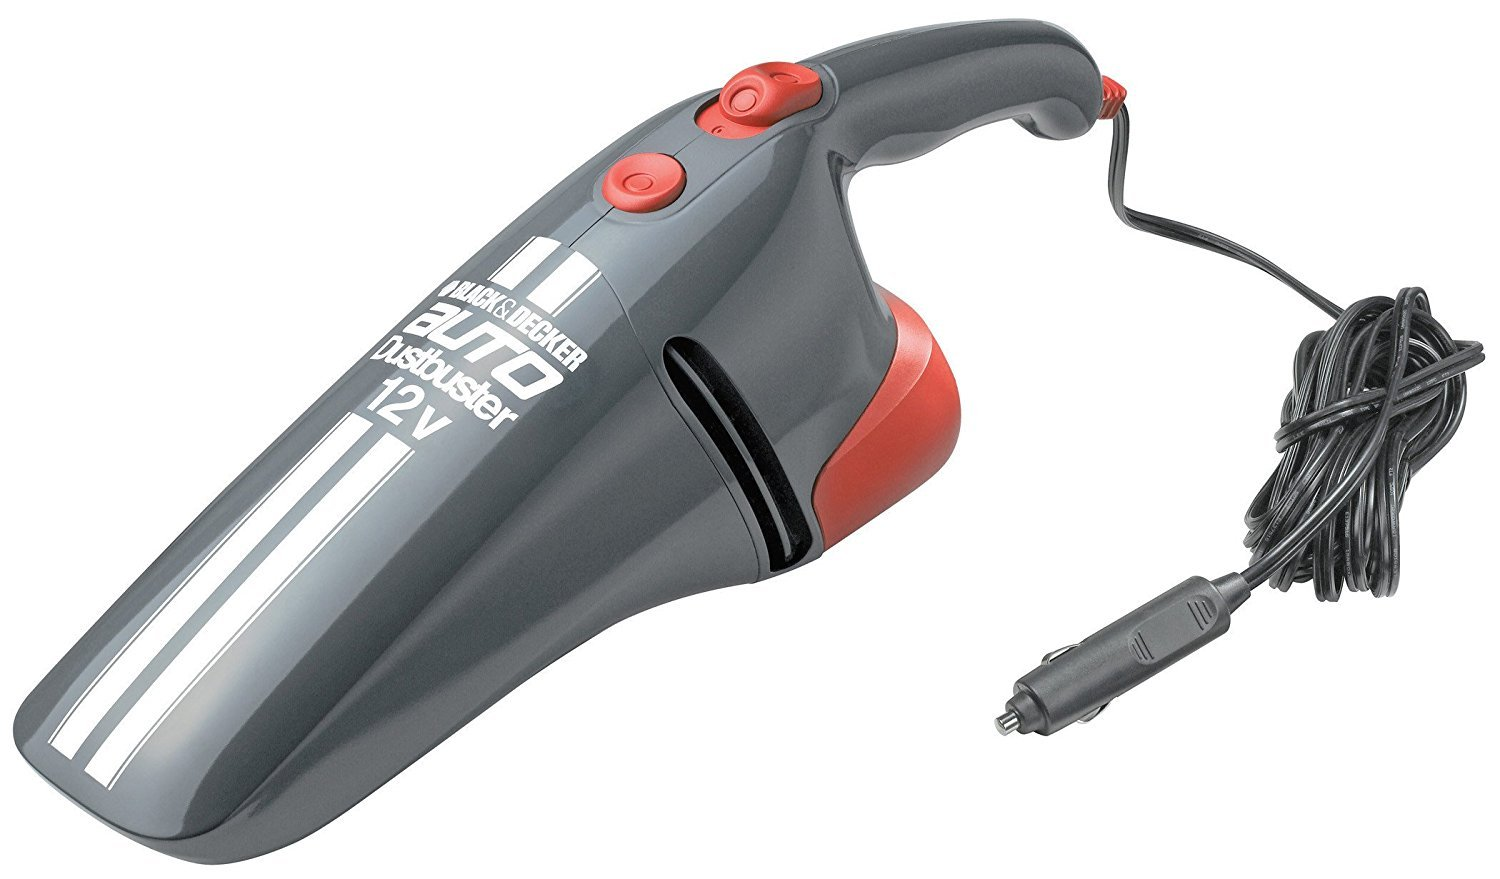 Black+Decker AV1205 - Aspirador de Mano Coche, Depósito 286 ml, Adaptador Mechero, 12 V, Color Gris y Naranja: Amazon.es: Coche y moto